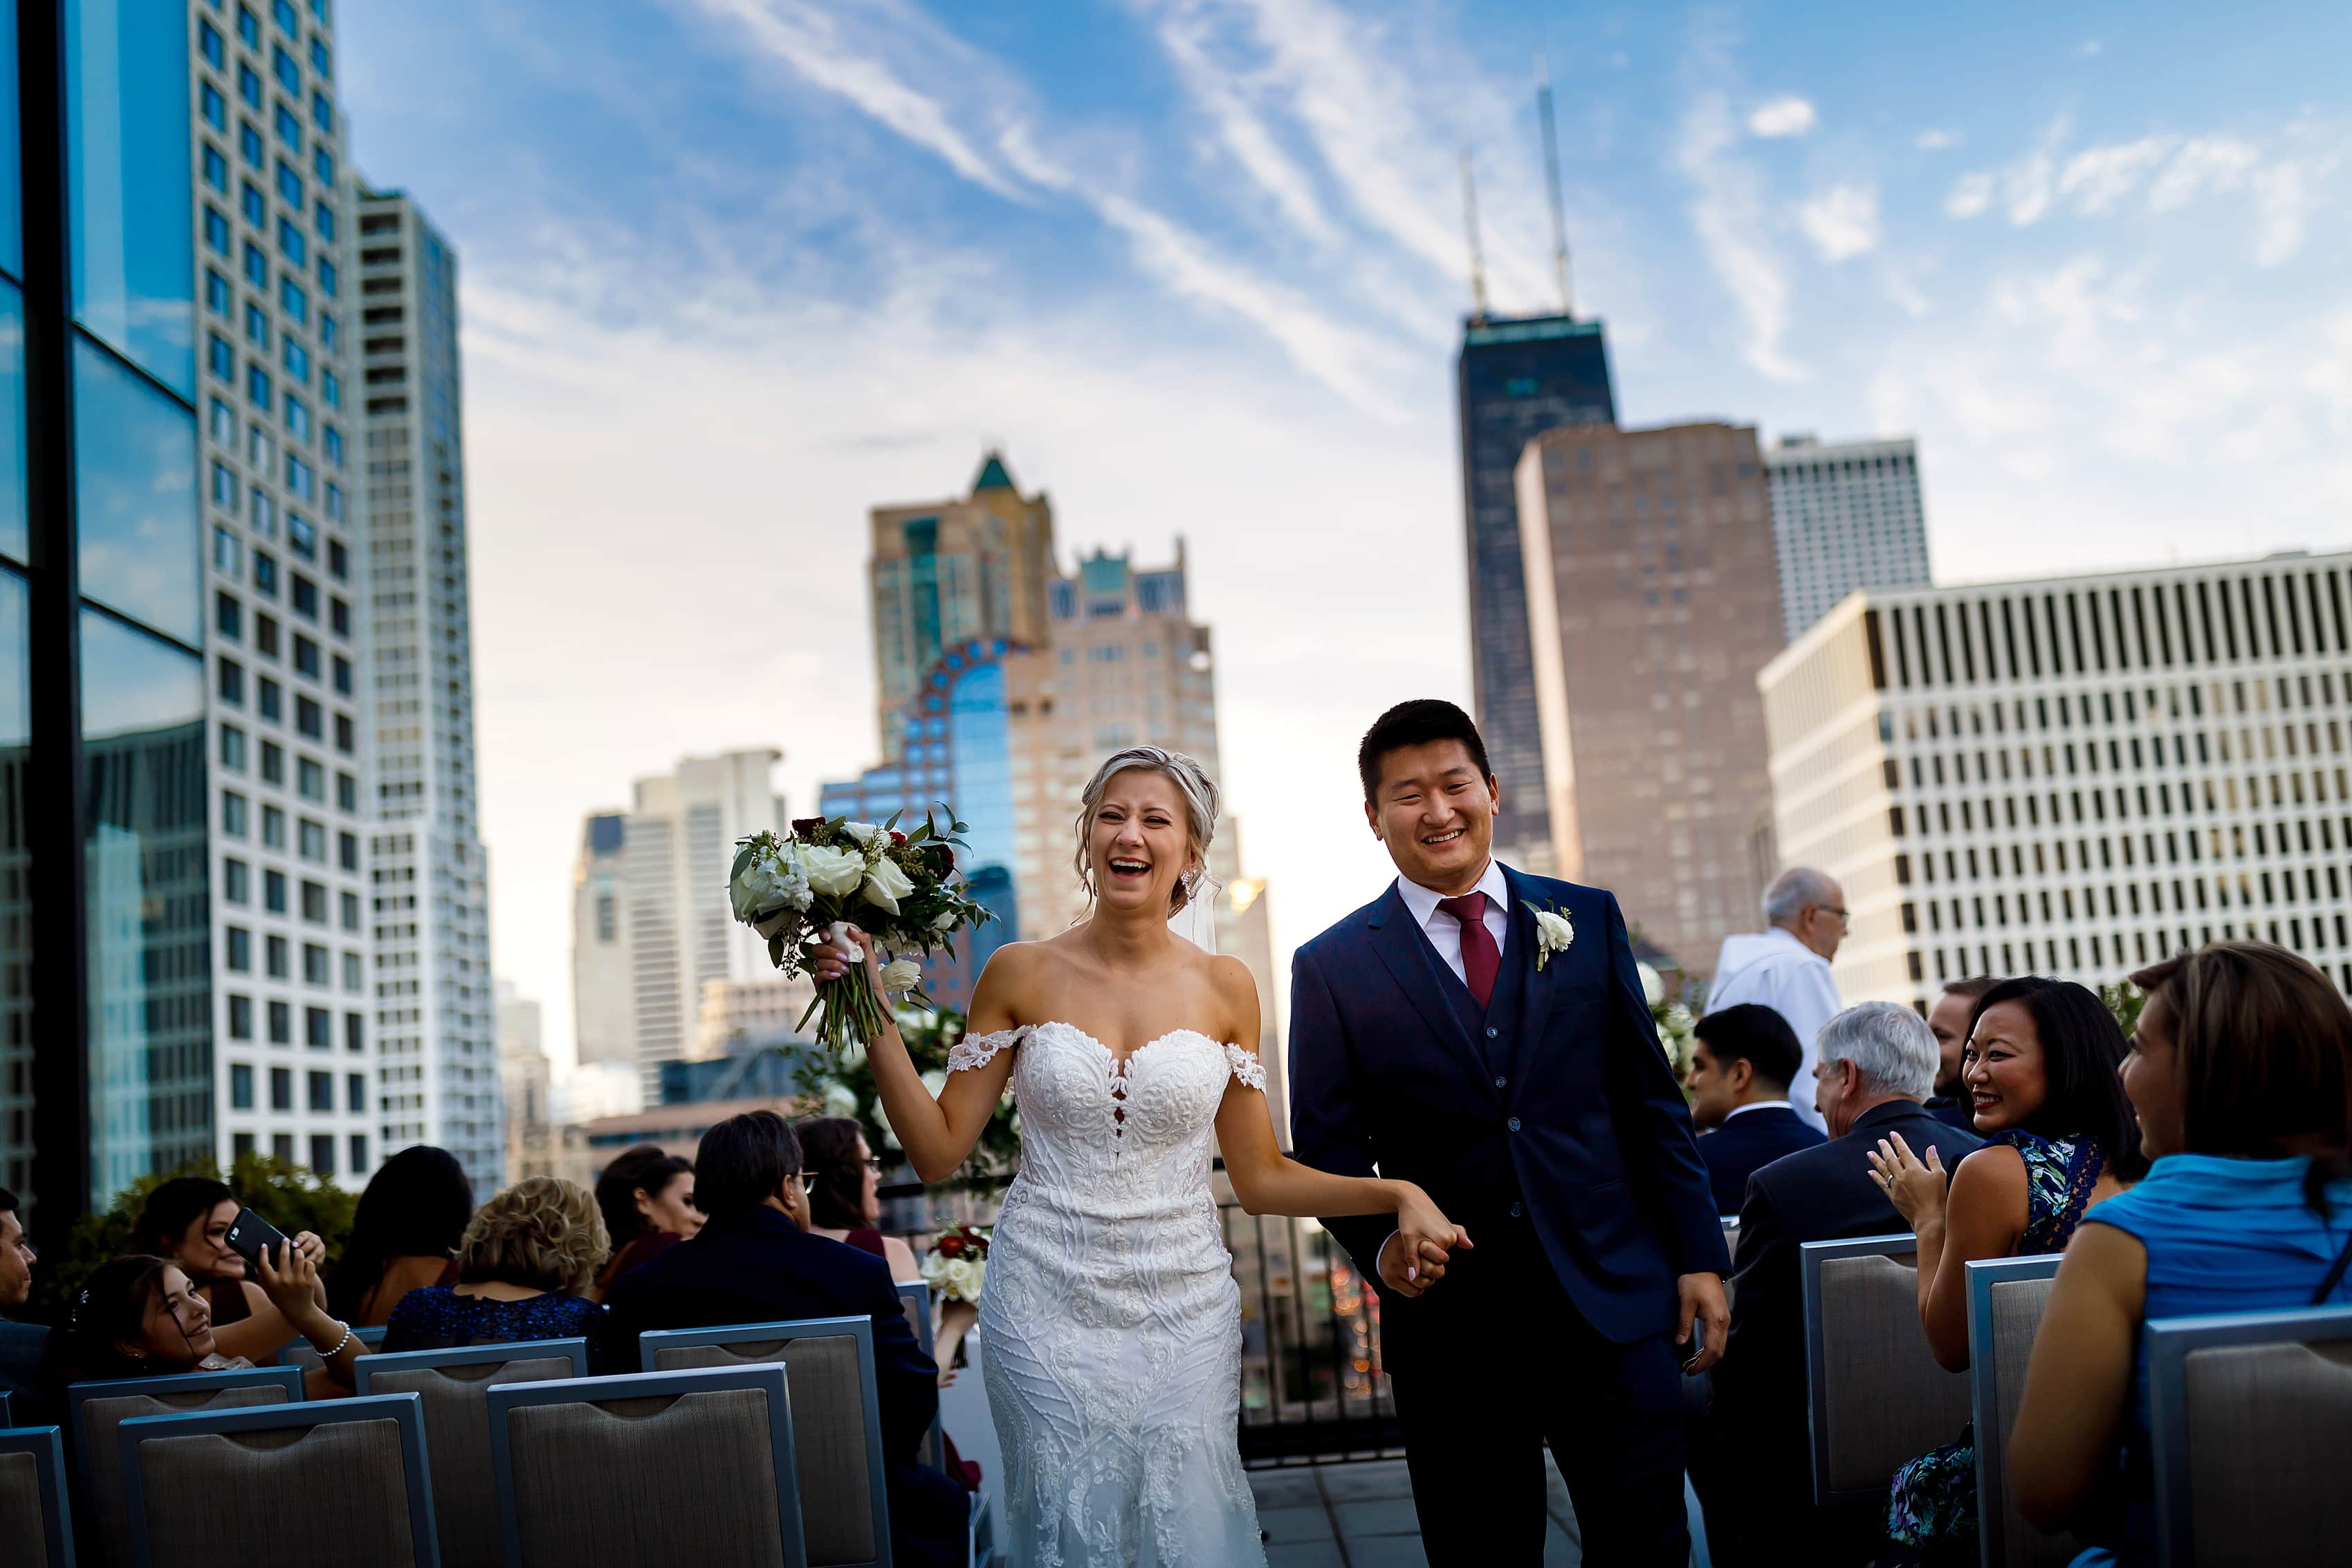 bride and groom walk back down the aisle after wedding ceremony on the patio of the Lux Suite at The Gwen Hotel in downtown Chicago